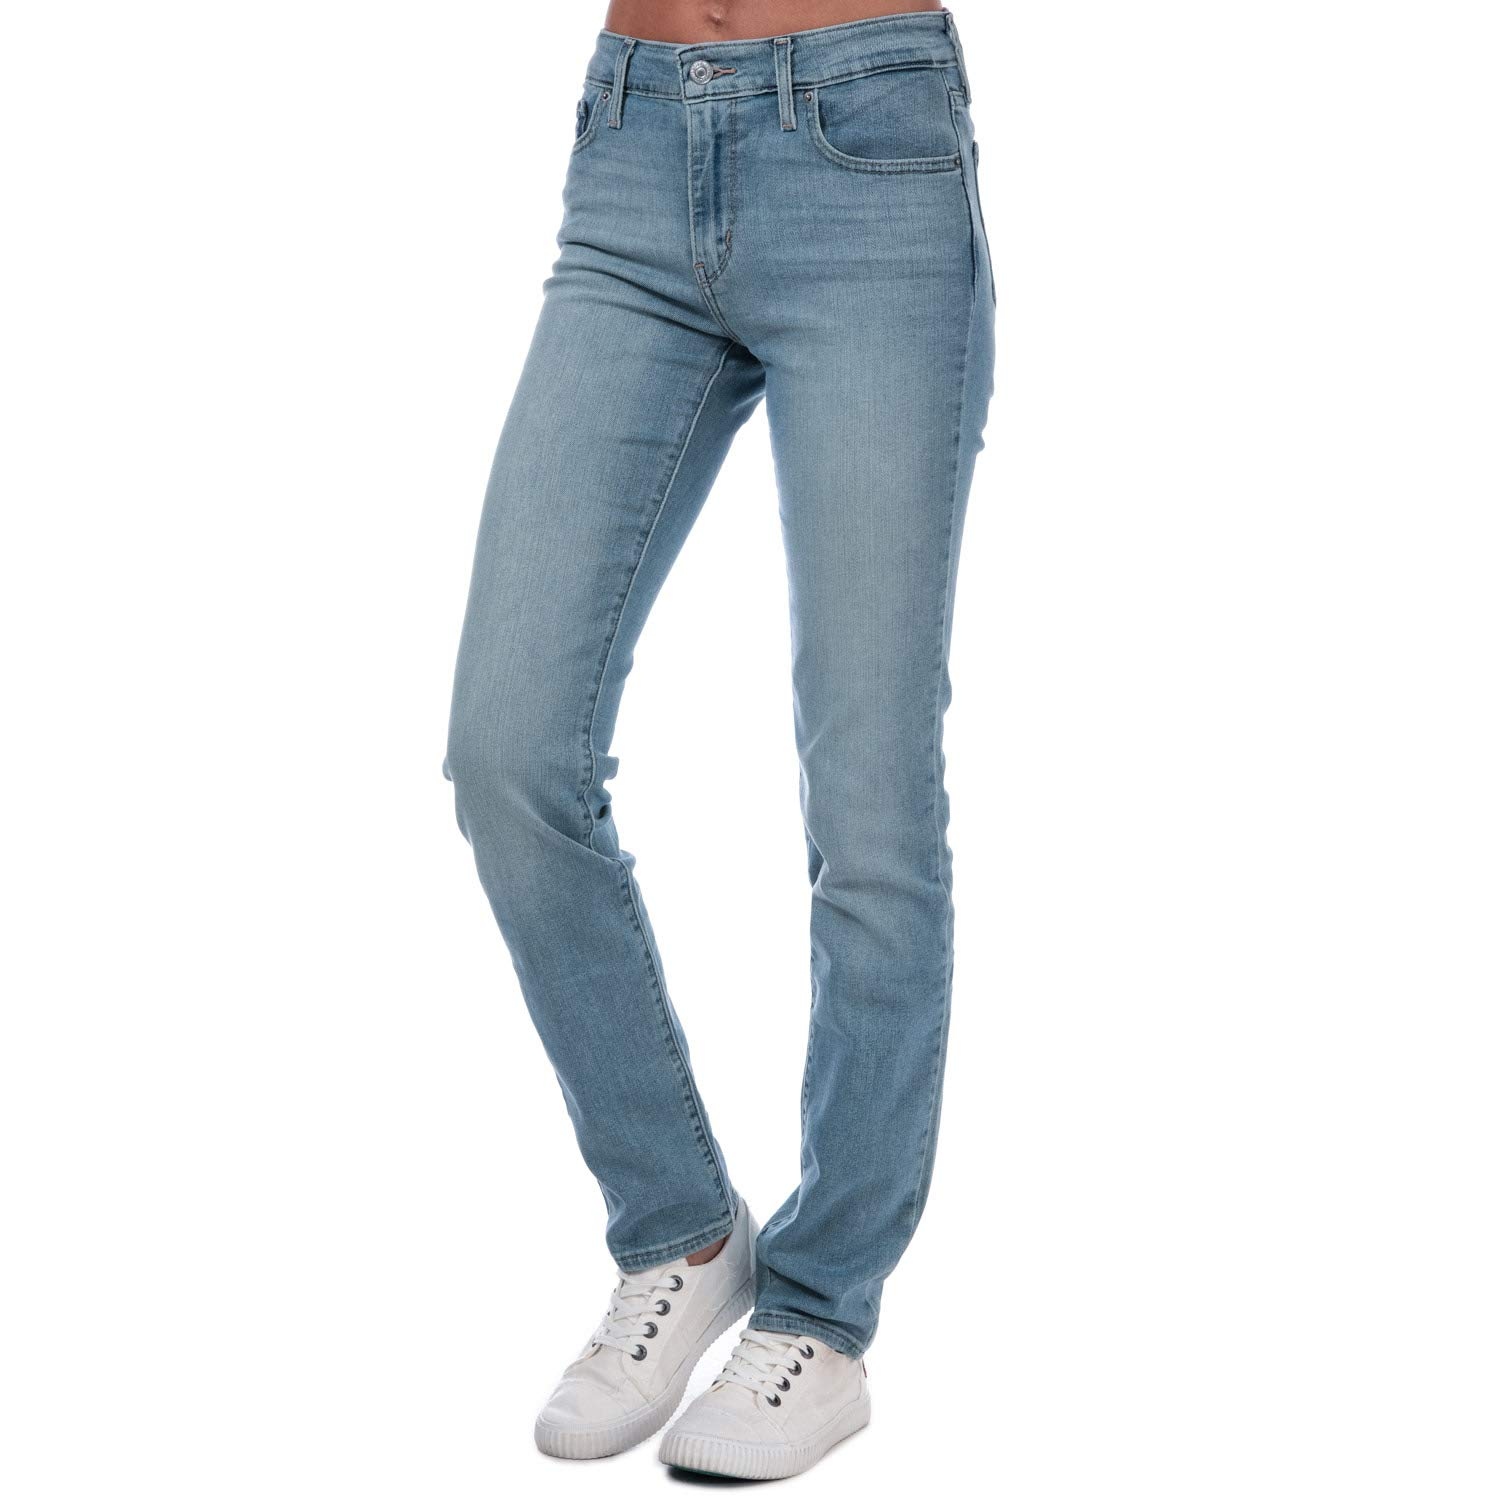 Levis 712 Slim Jeans in Been There Done That - Pantalones ...